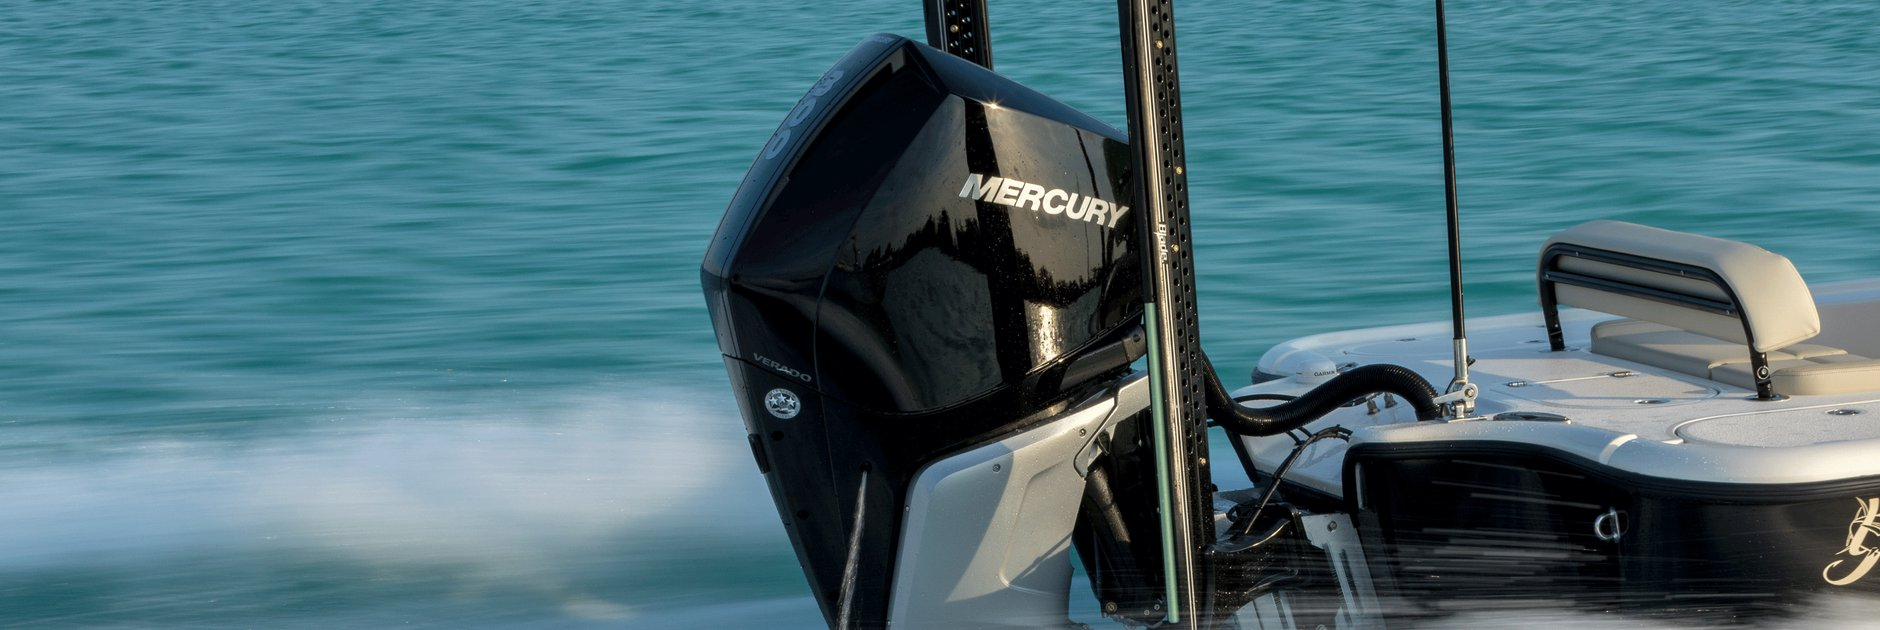 Mercury Marine Diagram Pdf Merc 650 3 Cyl Internal External Wiring Get Ready For The V 8 Fourstroke